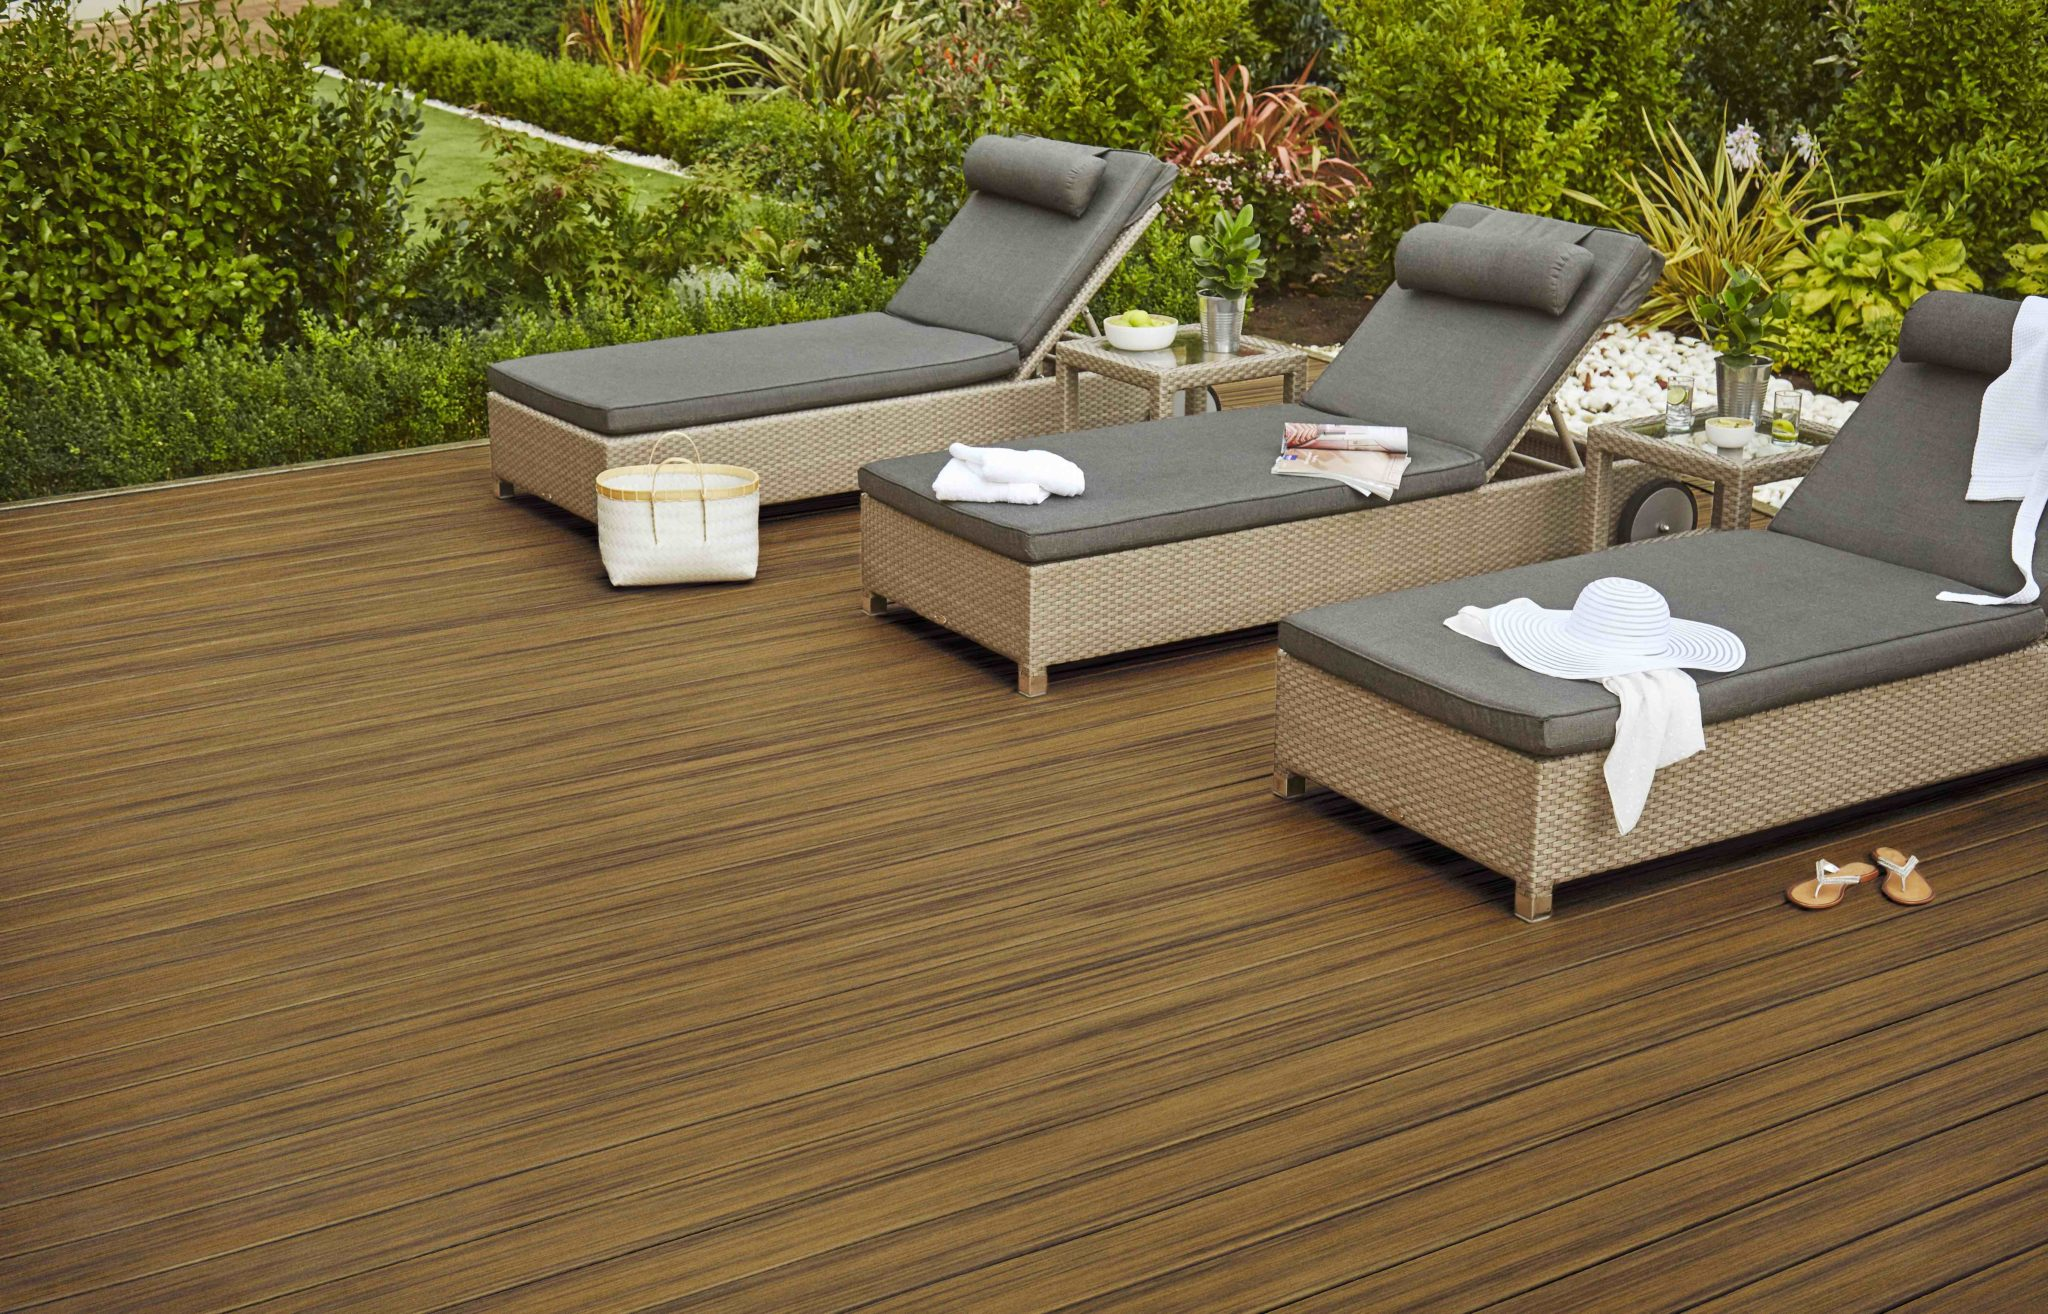 Merbau Decking Melbourne